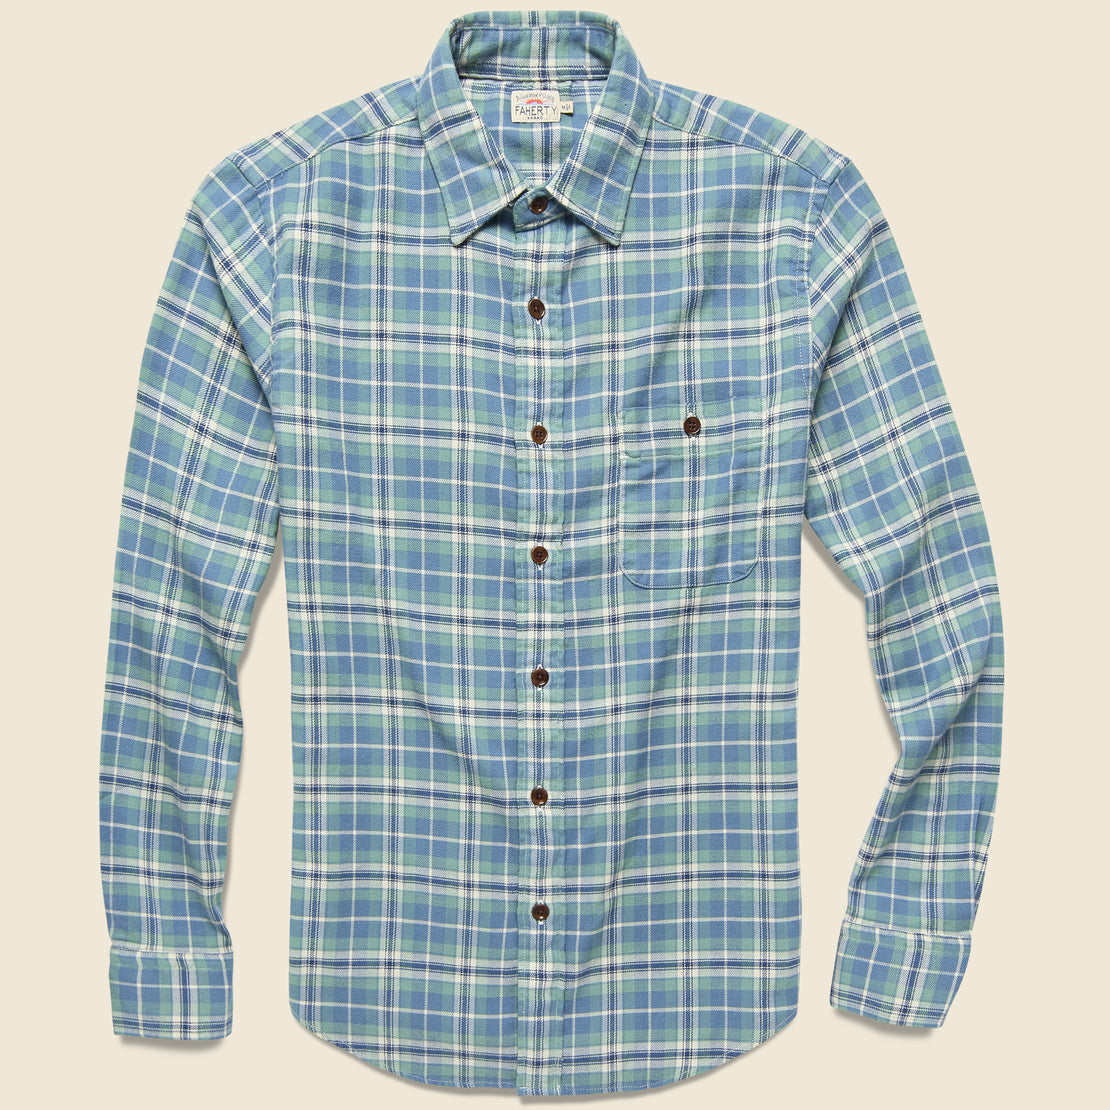 Faherty Stretch Seaview Shirt - Dusty Ocean Plaid